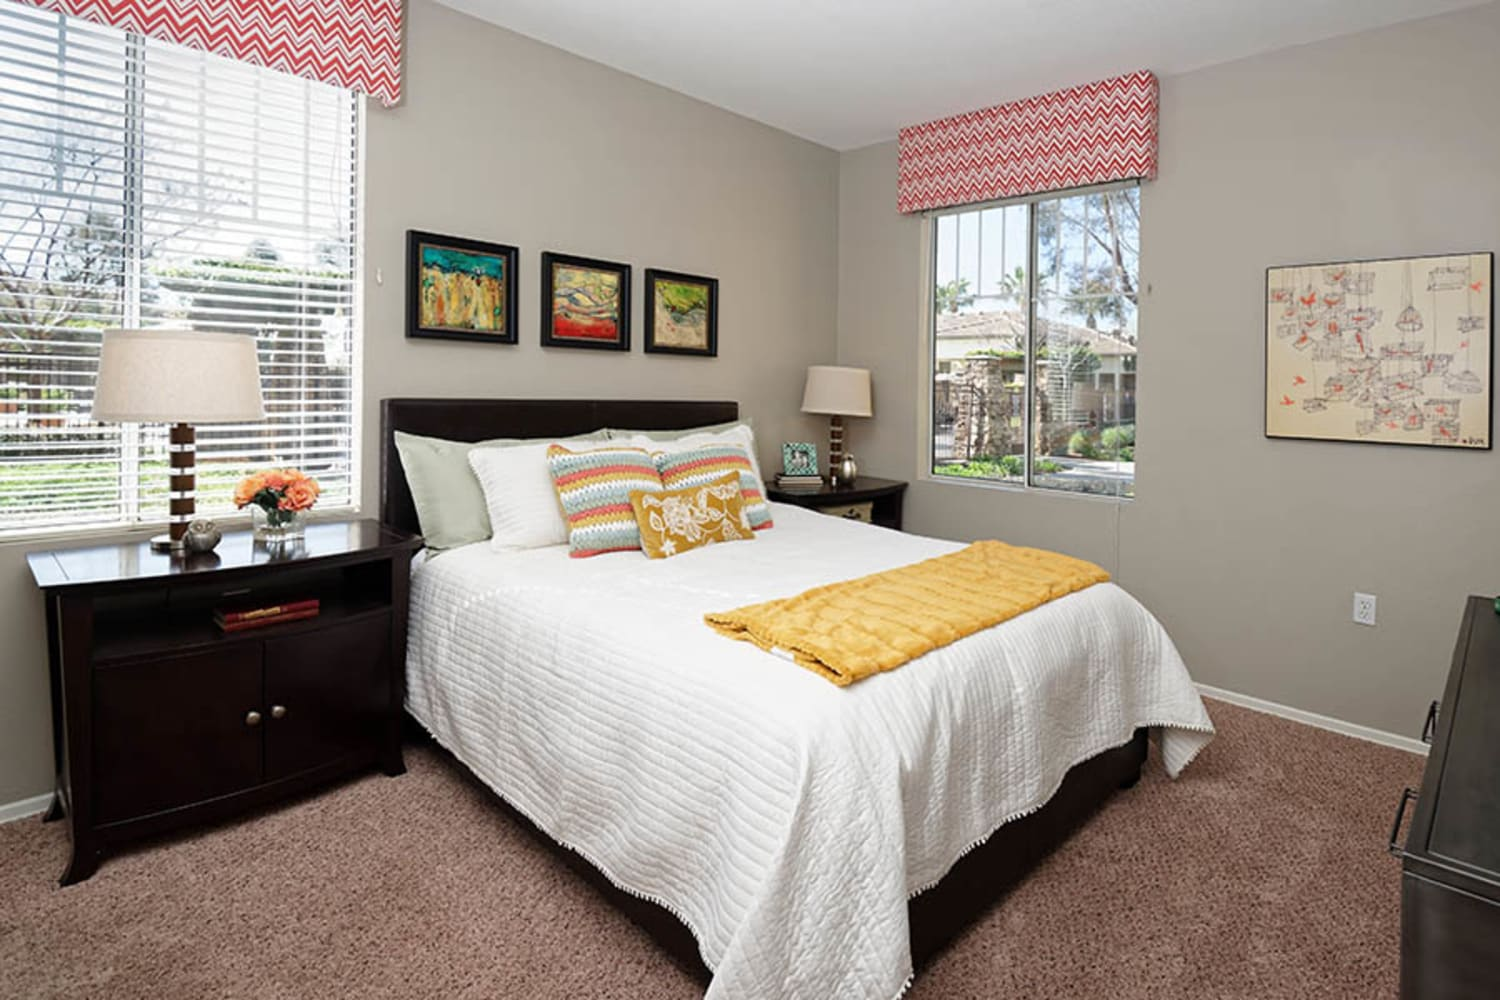 Camino Real offers large master bedrooms in Rancho Cucamonga, California